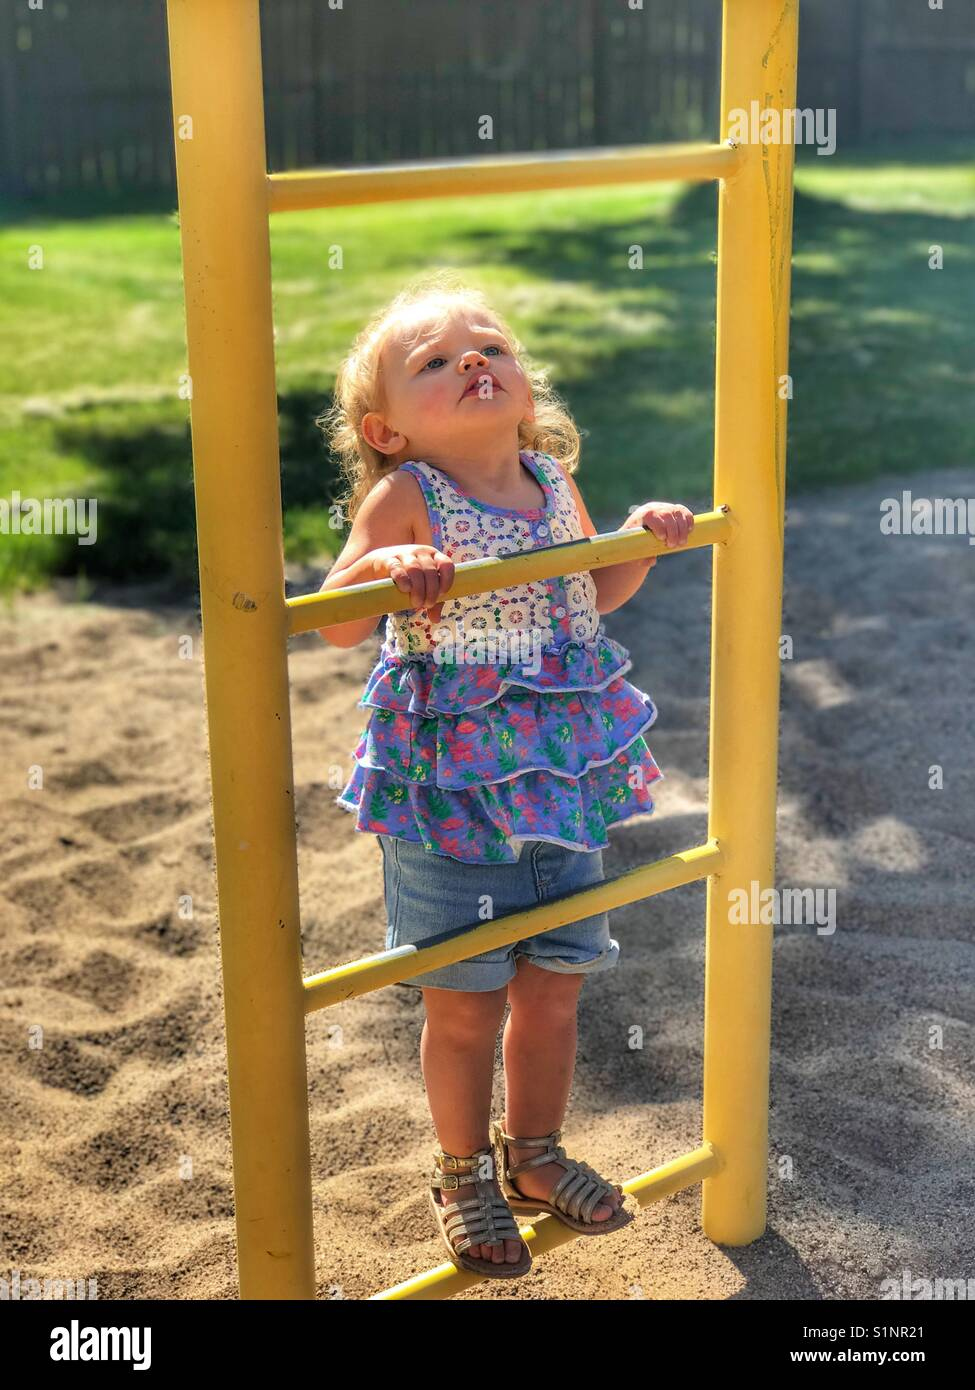 Baby climbing the ladder on the playground equipment while looking up - Stock Image